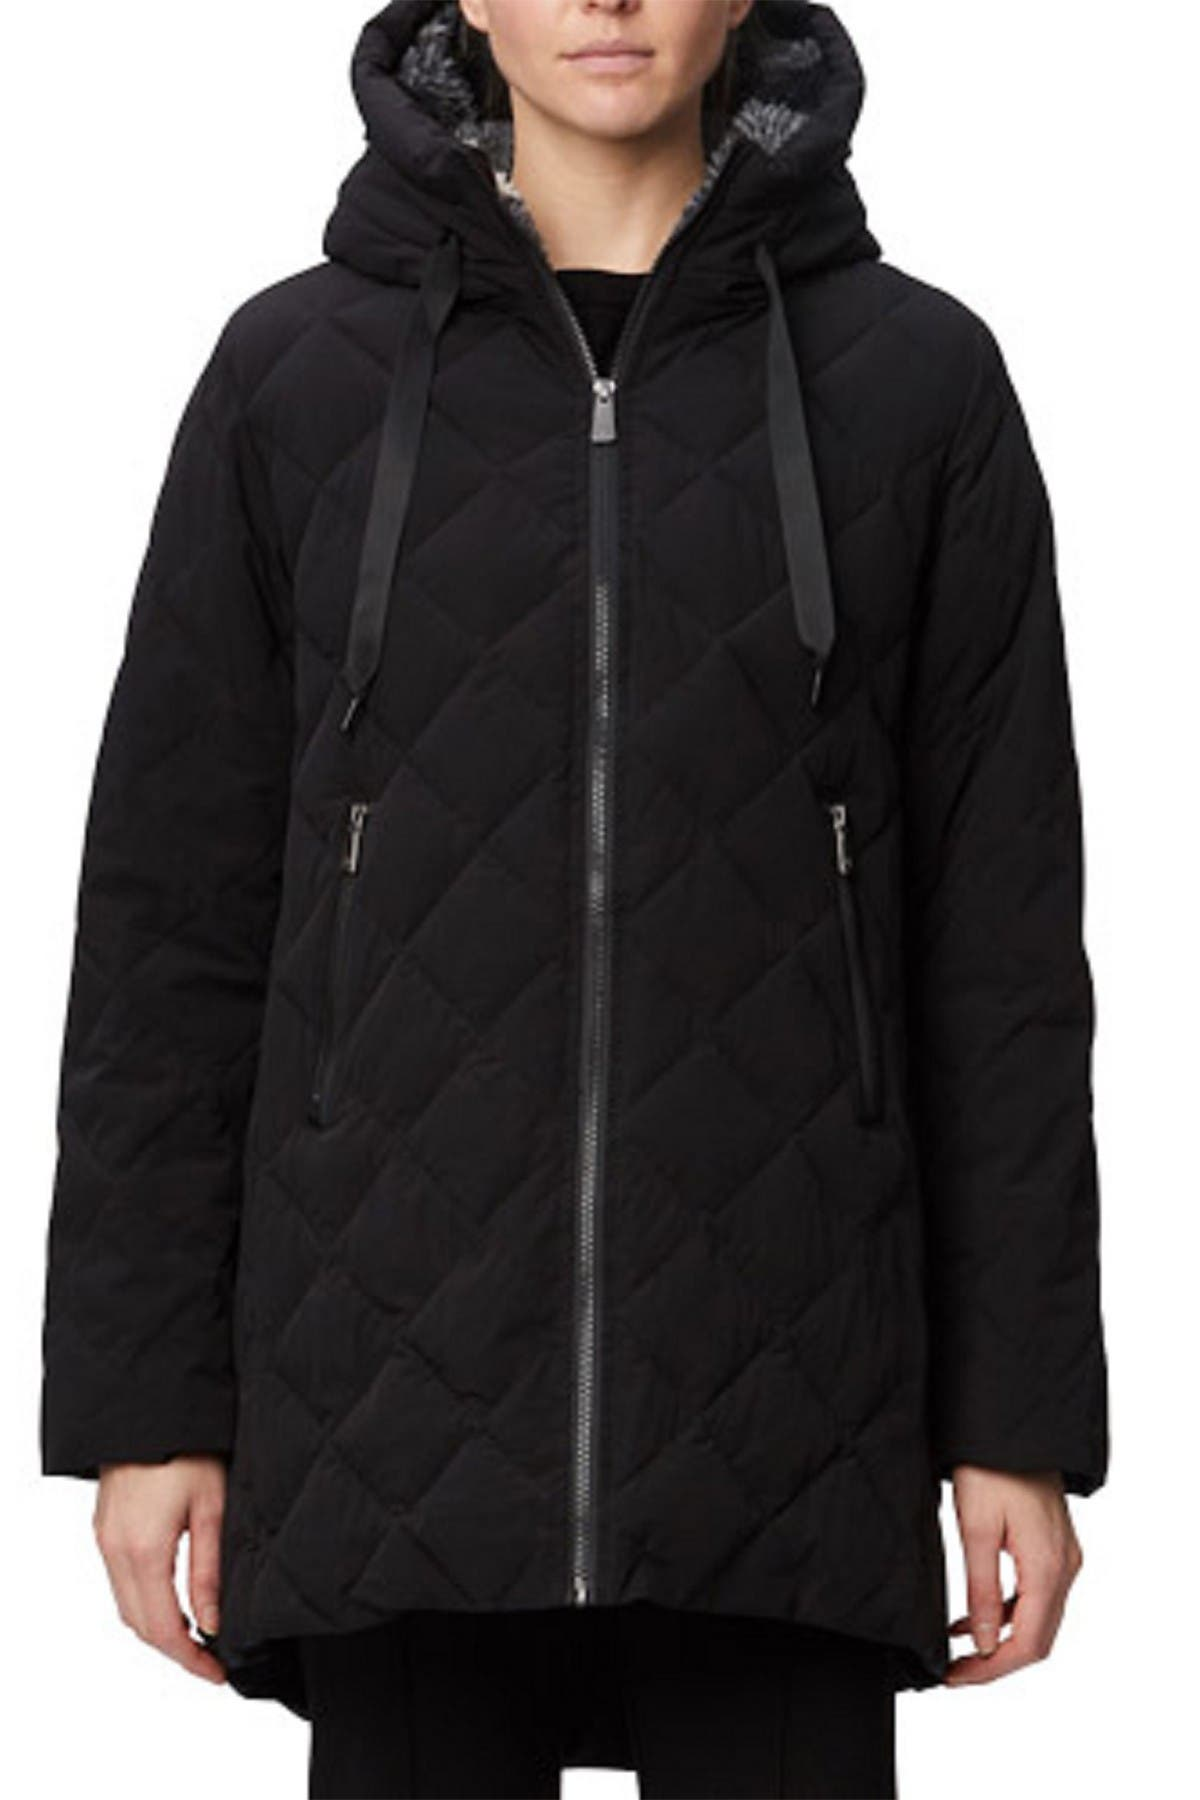 Image of Rainforest Diamond Faux Shearling Lined Quilted Thermoluxe A-Shape Walker Jacket